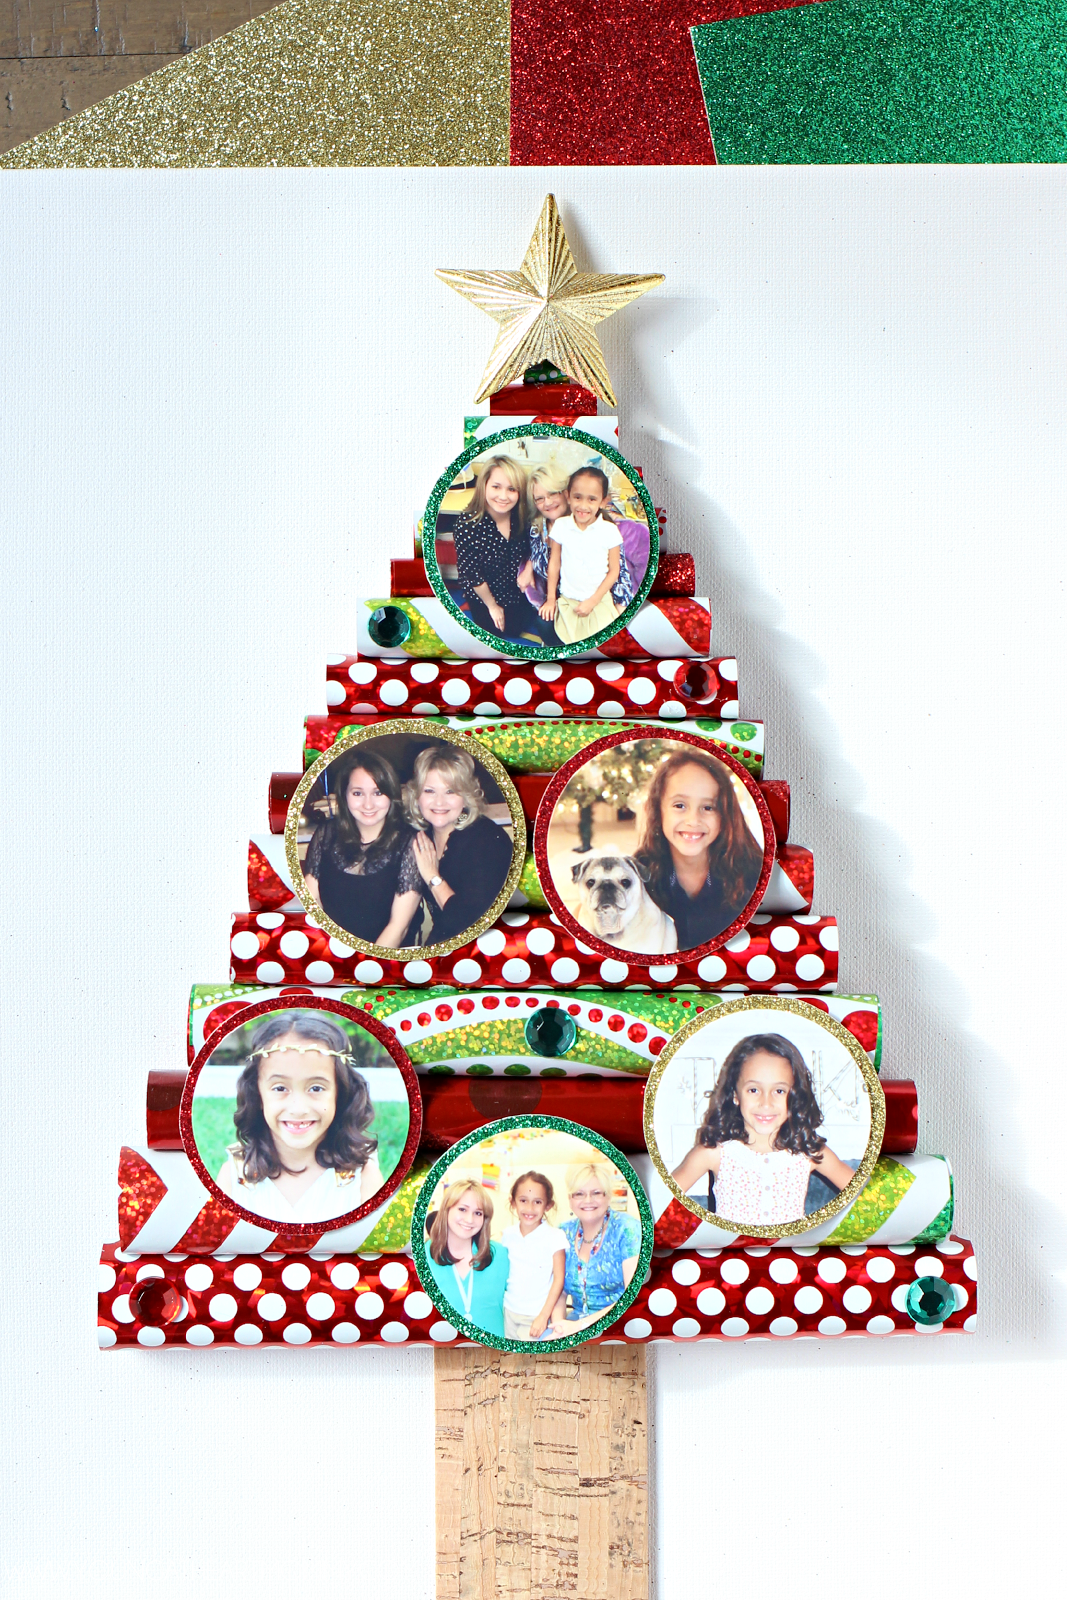 Christmas Tree Decorations Using Paper : Wrapping paper christmas tree canvas with photo ornaments